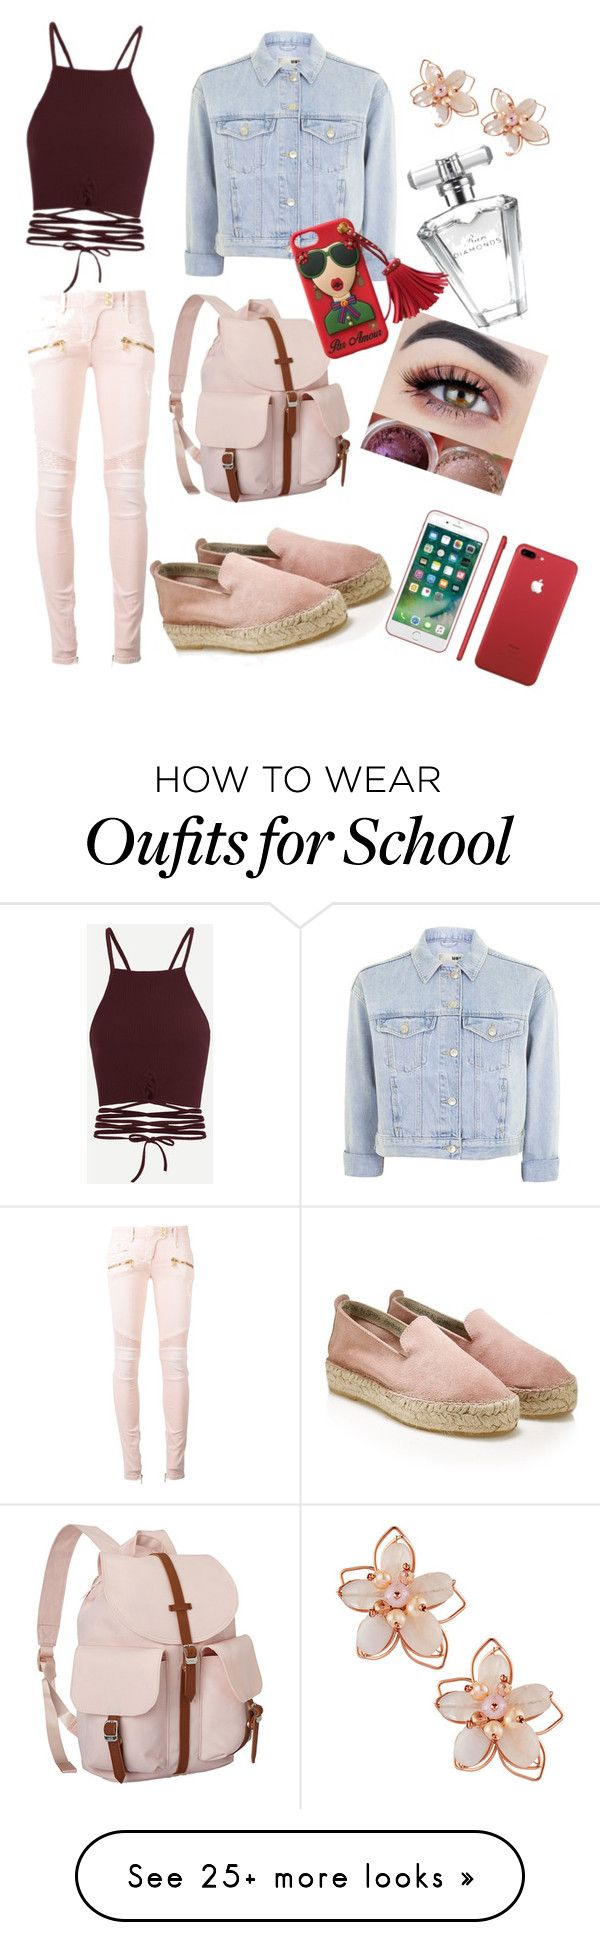 """Outfit #ootd"" by tinkerangel on Polyvore featuring Topshop, Balmain, Herschel Supply Co., NAKAMOL and Avon"